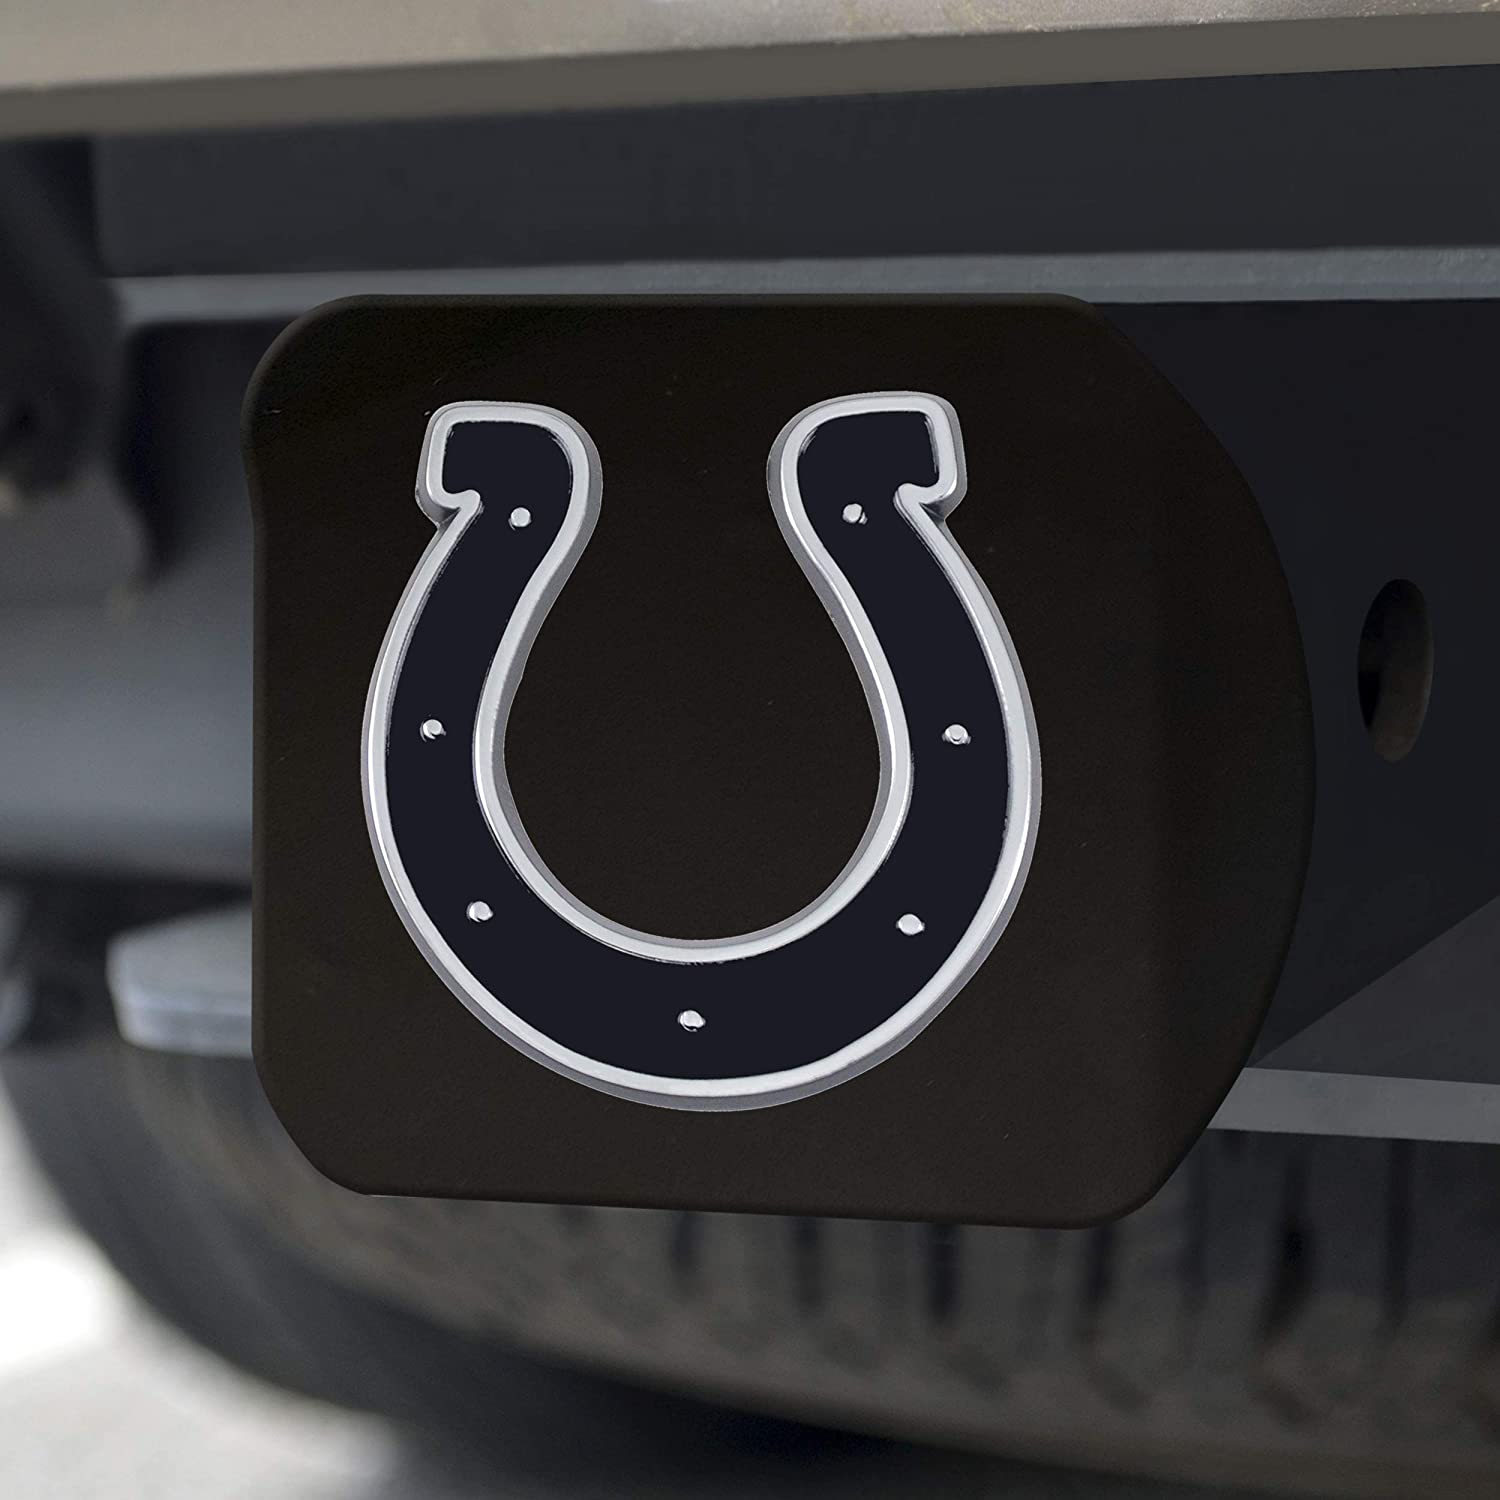 FANMATS 21536 NFL Indianapolis Colts Black 2 Square Type III Metal Hitch Cover with 3D Chrome Emblem